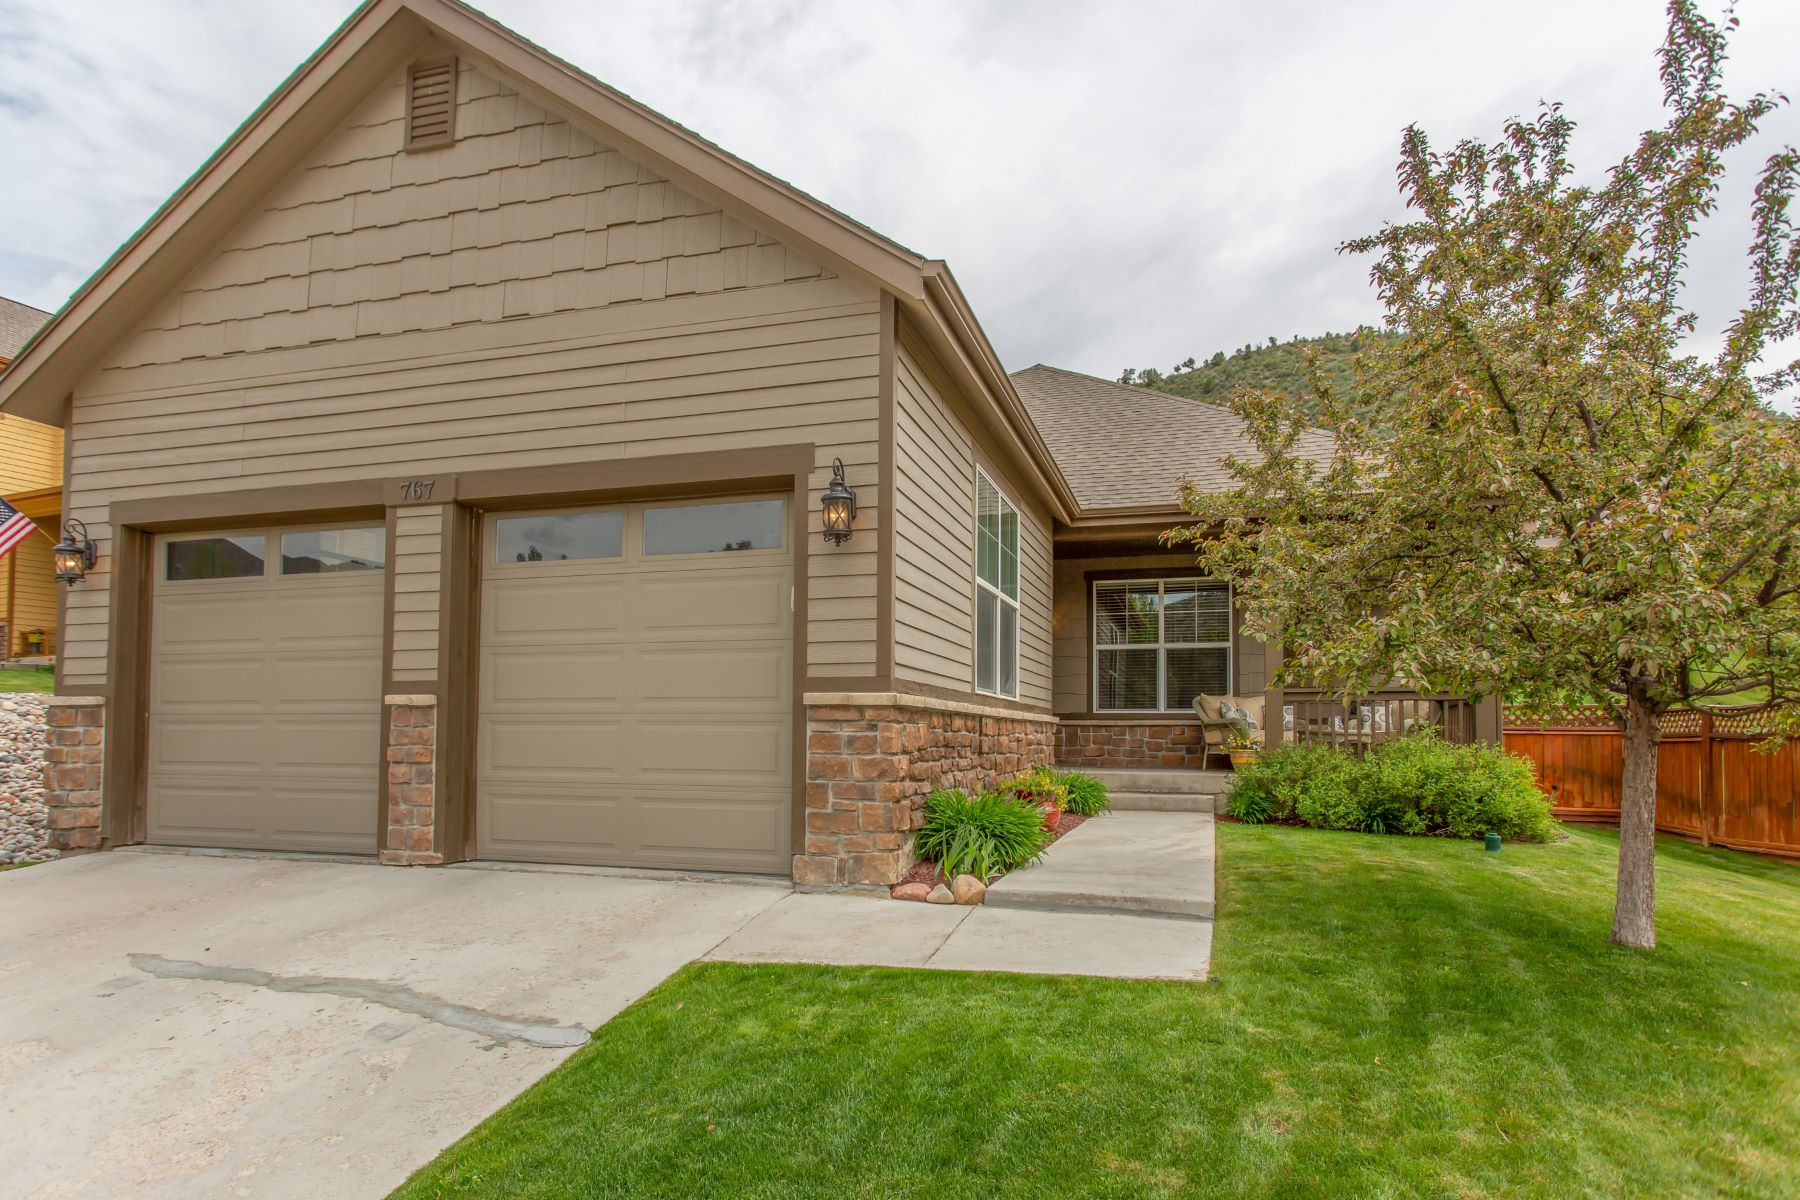 Single Family Home for Active at Castle Valley Ranch Style Home 767 S. Wildhorse Drive New Castle, Colorado 81647 United States